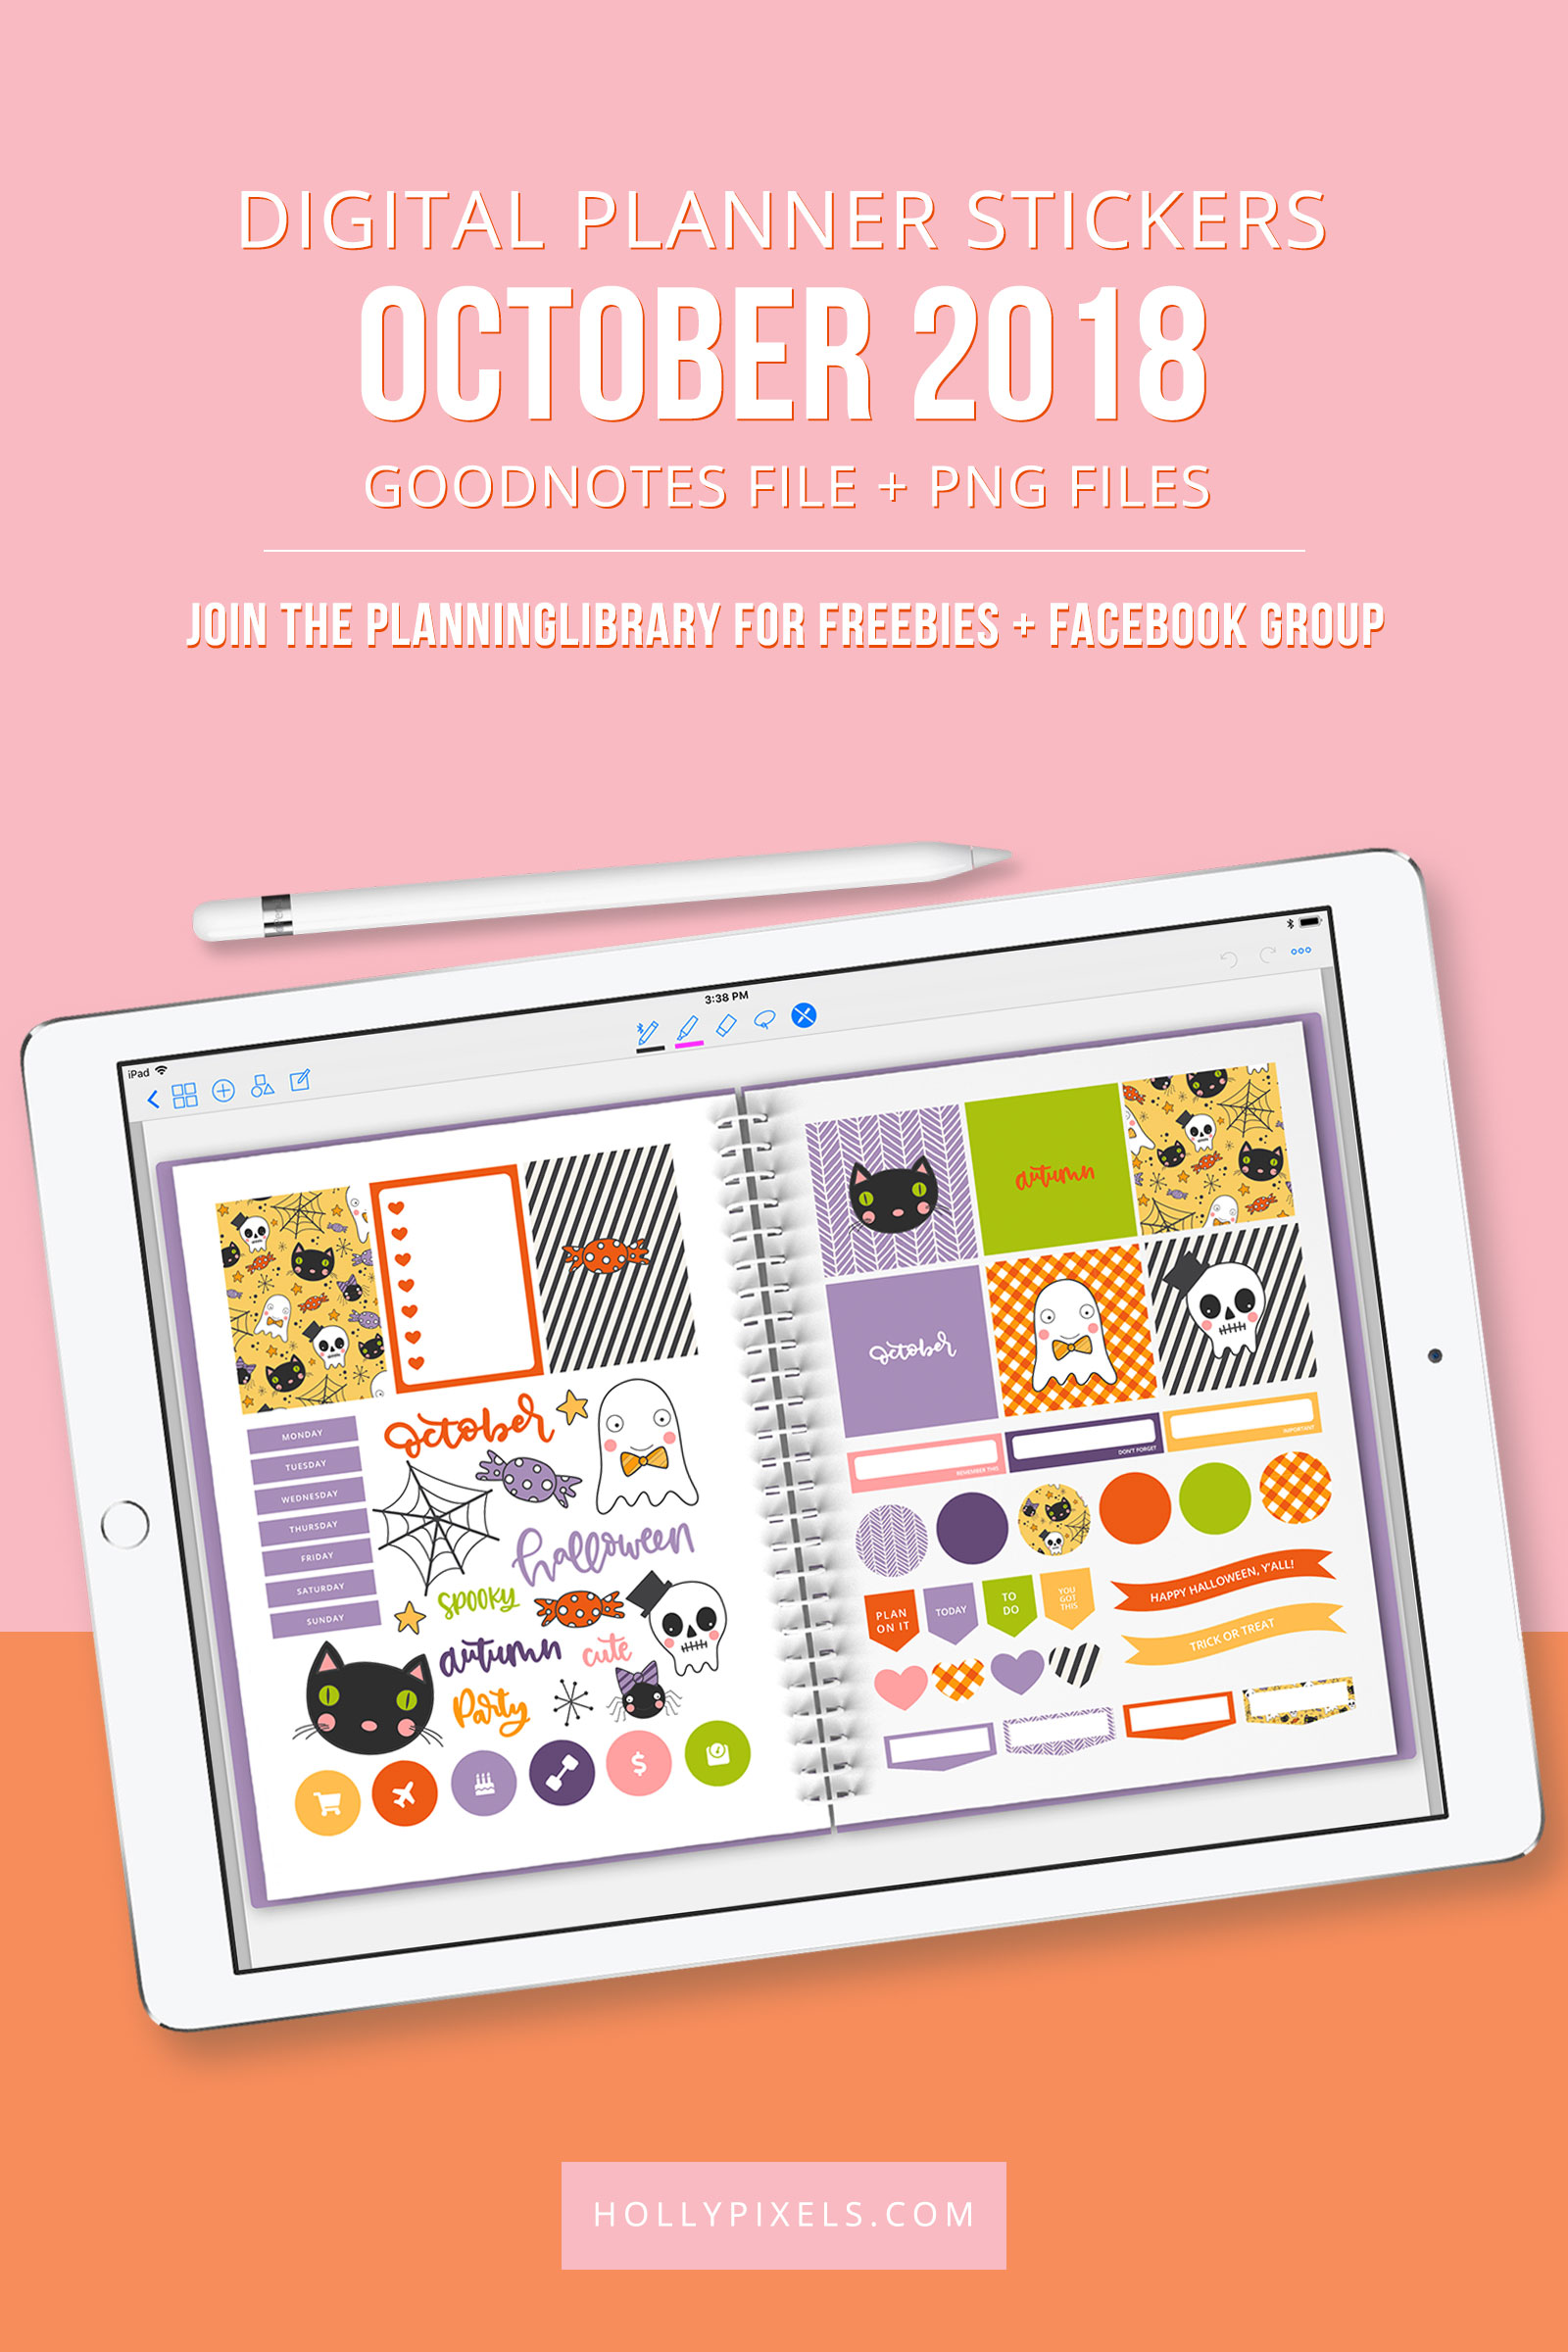 Today we're going to be showing you the October 2018 Plan with me Digital Stickers for digital planning. This time we are proud to say that we have not only included a GoodNotes file, but also the PNG files in a zip that you can use with other digital planning apps on your iPad.